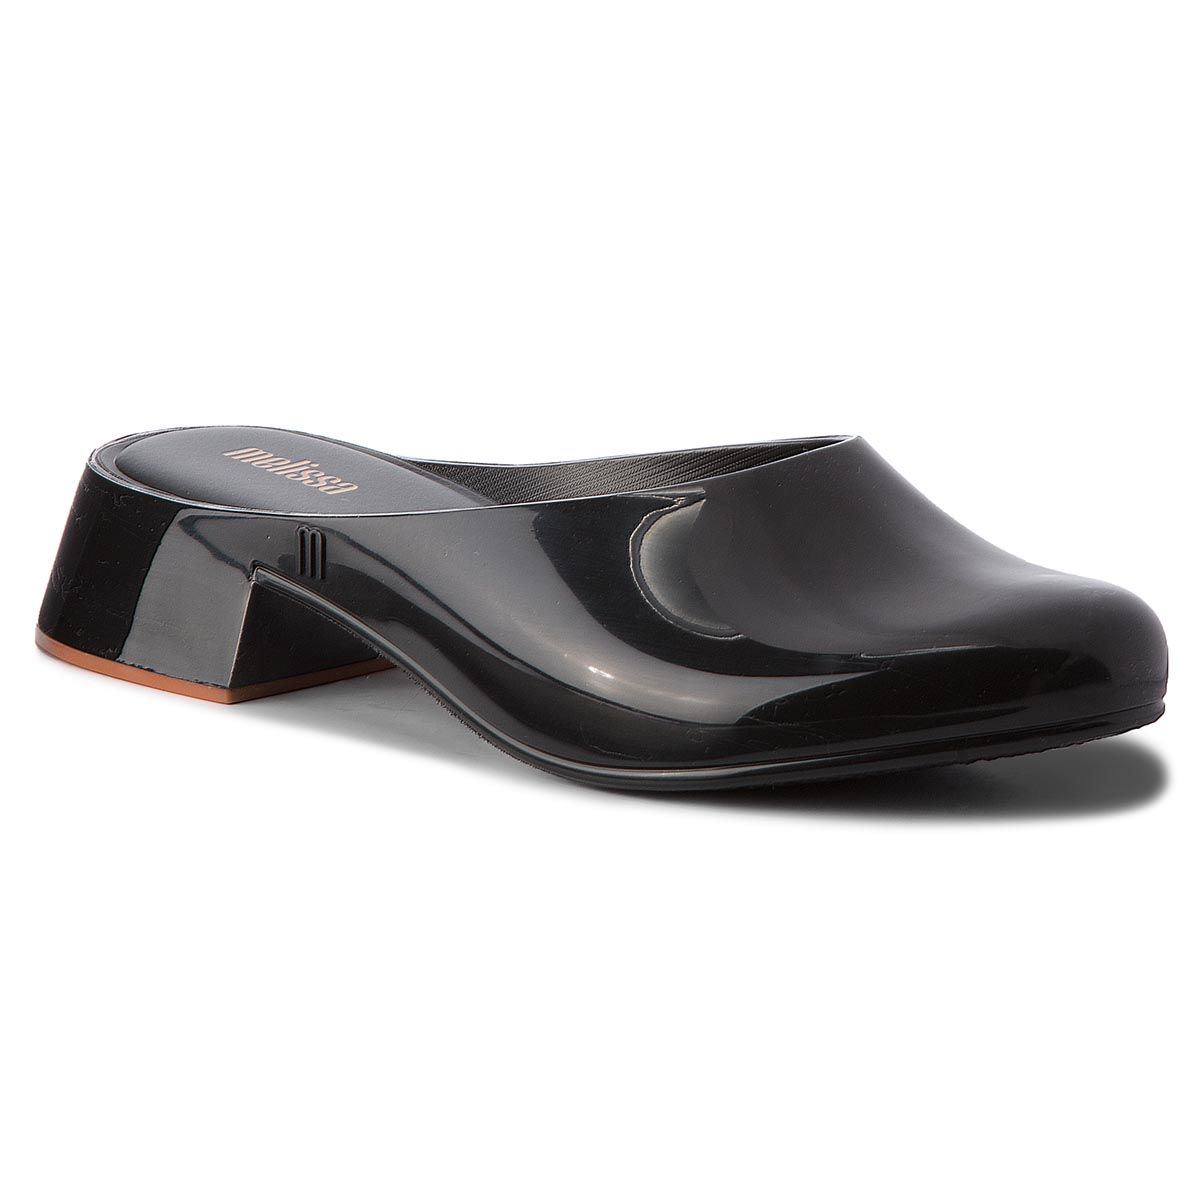 Klapki MELISSA - Zen Ad 32345 Black/Brown 50801